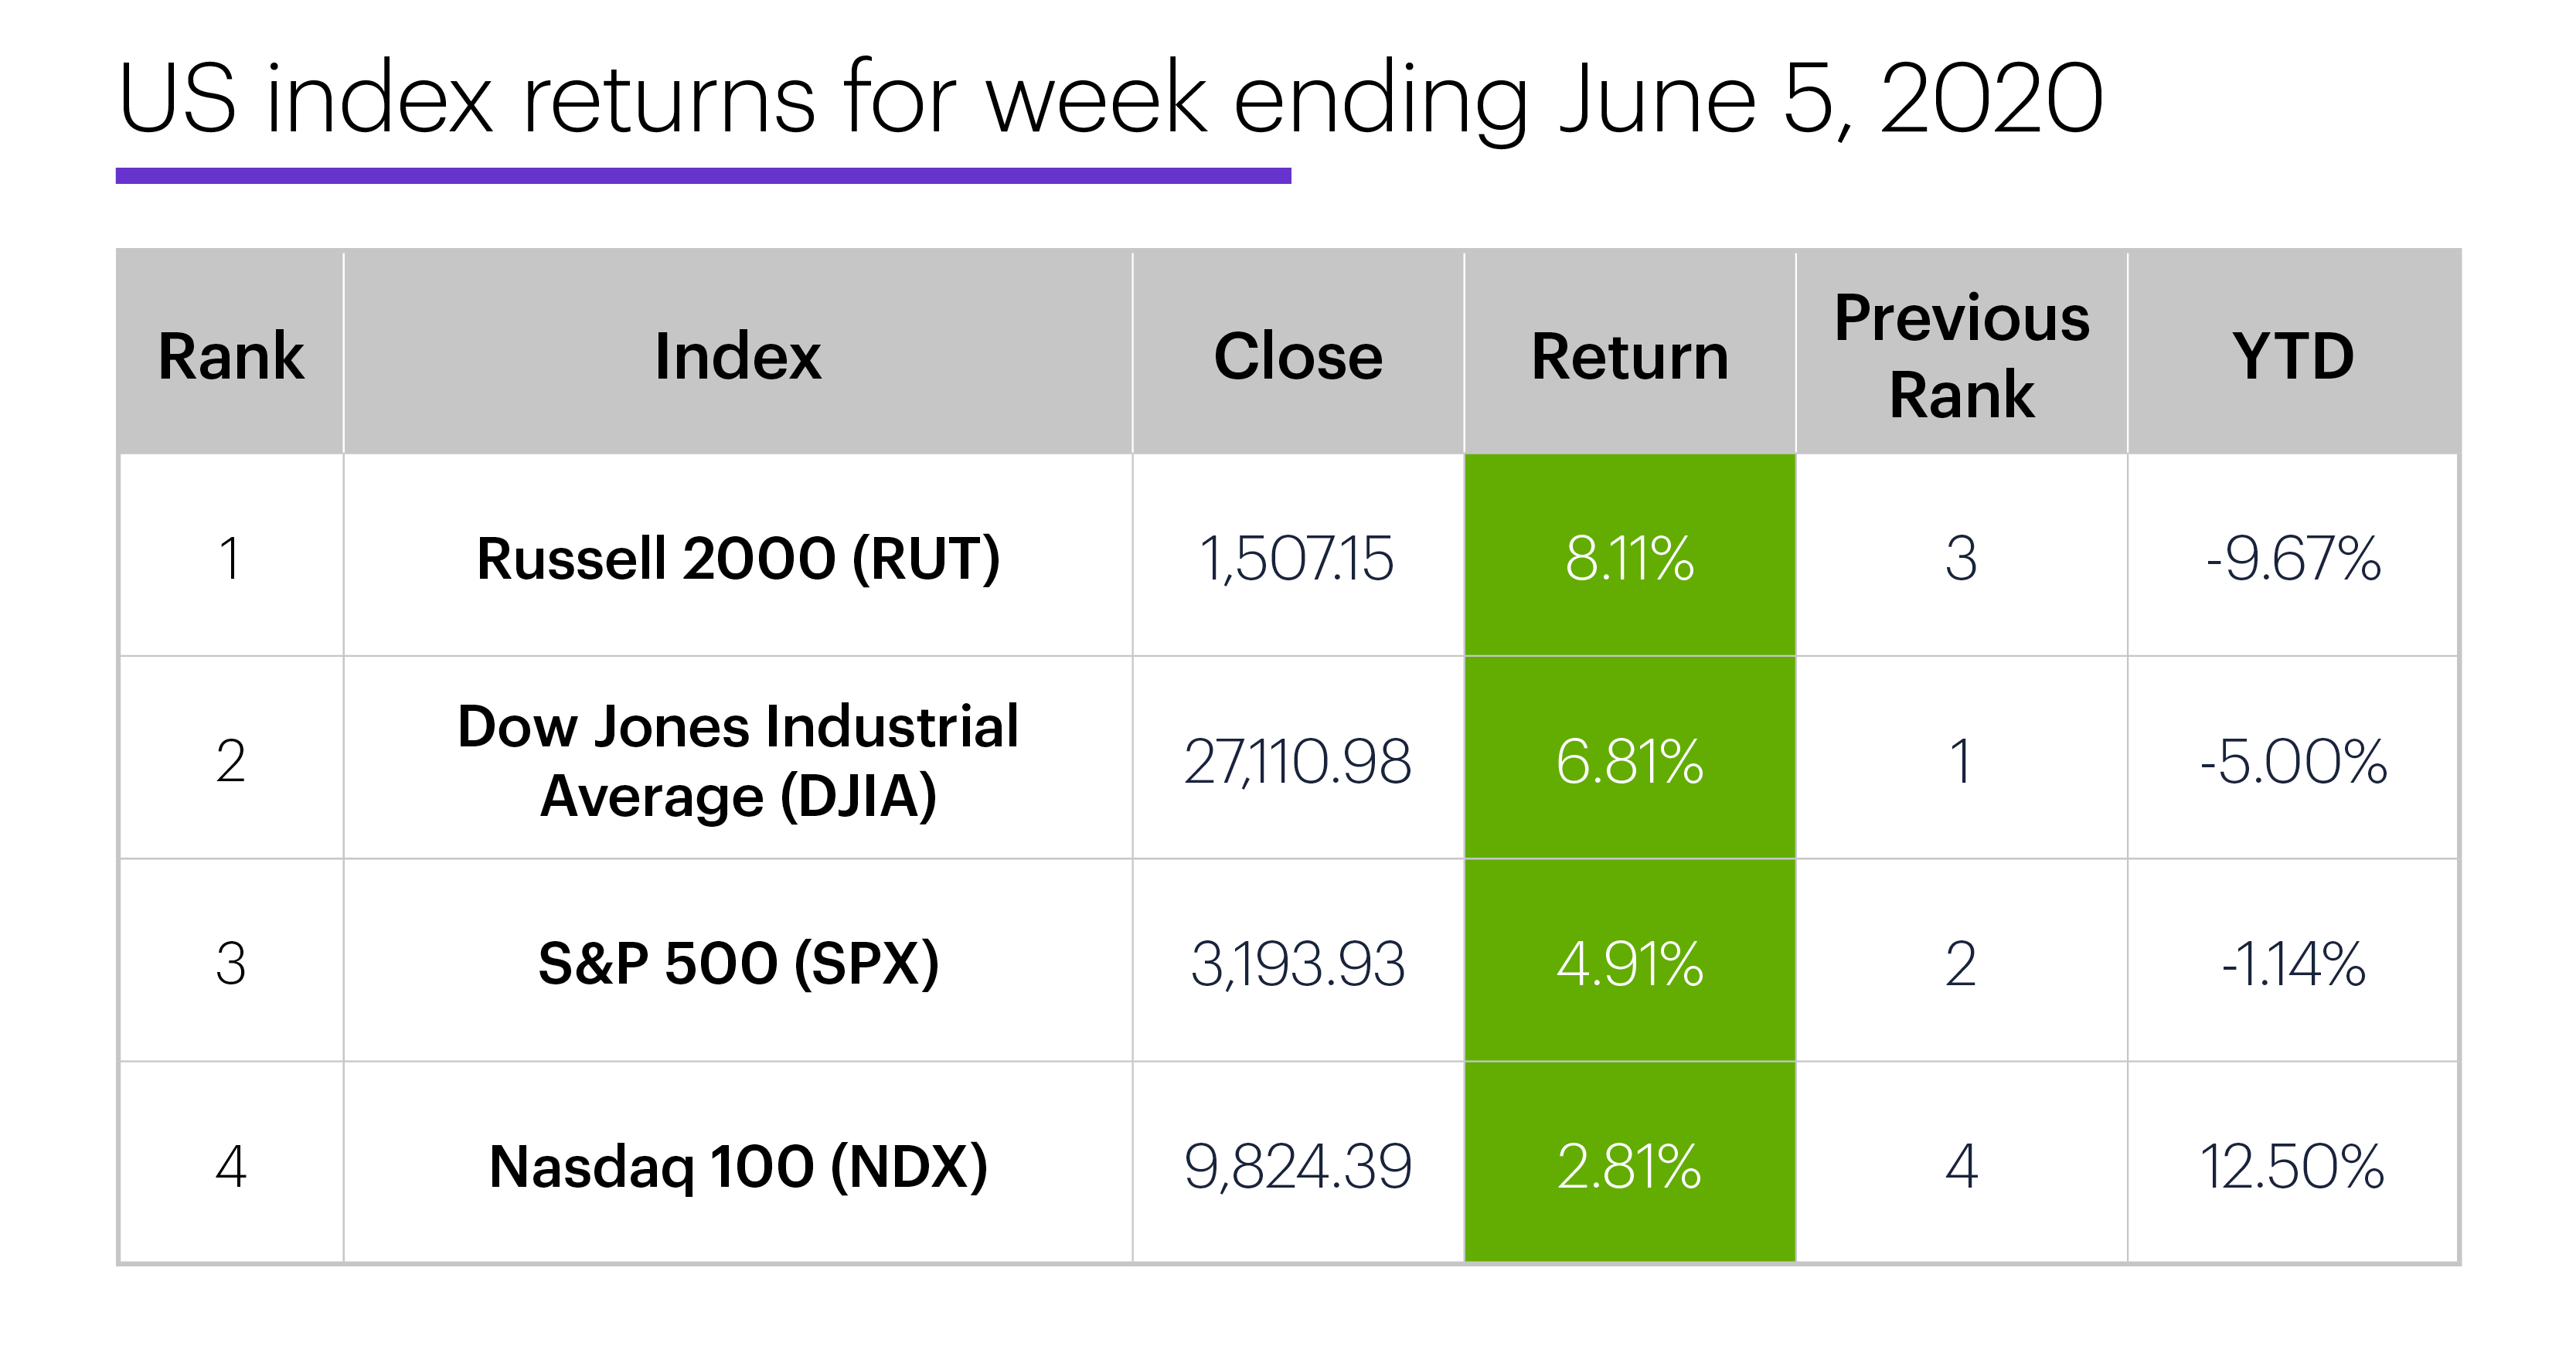 US stock index performance table for week ending 6/5/20. S&P 500 (SPX), Nasdaq 100 (NDX), Russell 2000 (RUT), Dow Jones Industrial Average (DJIA).